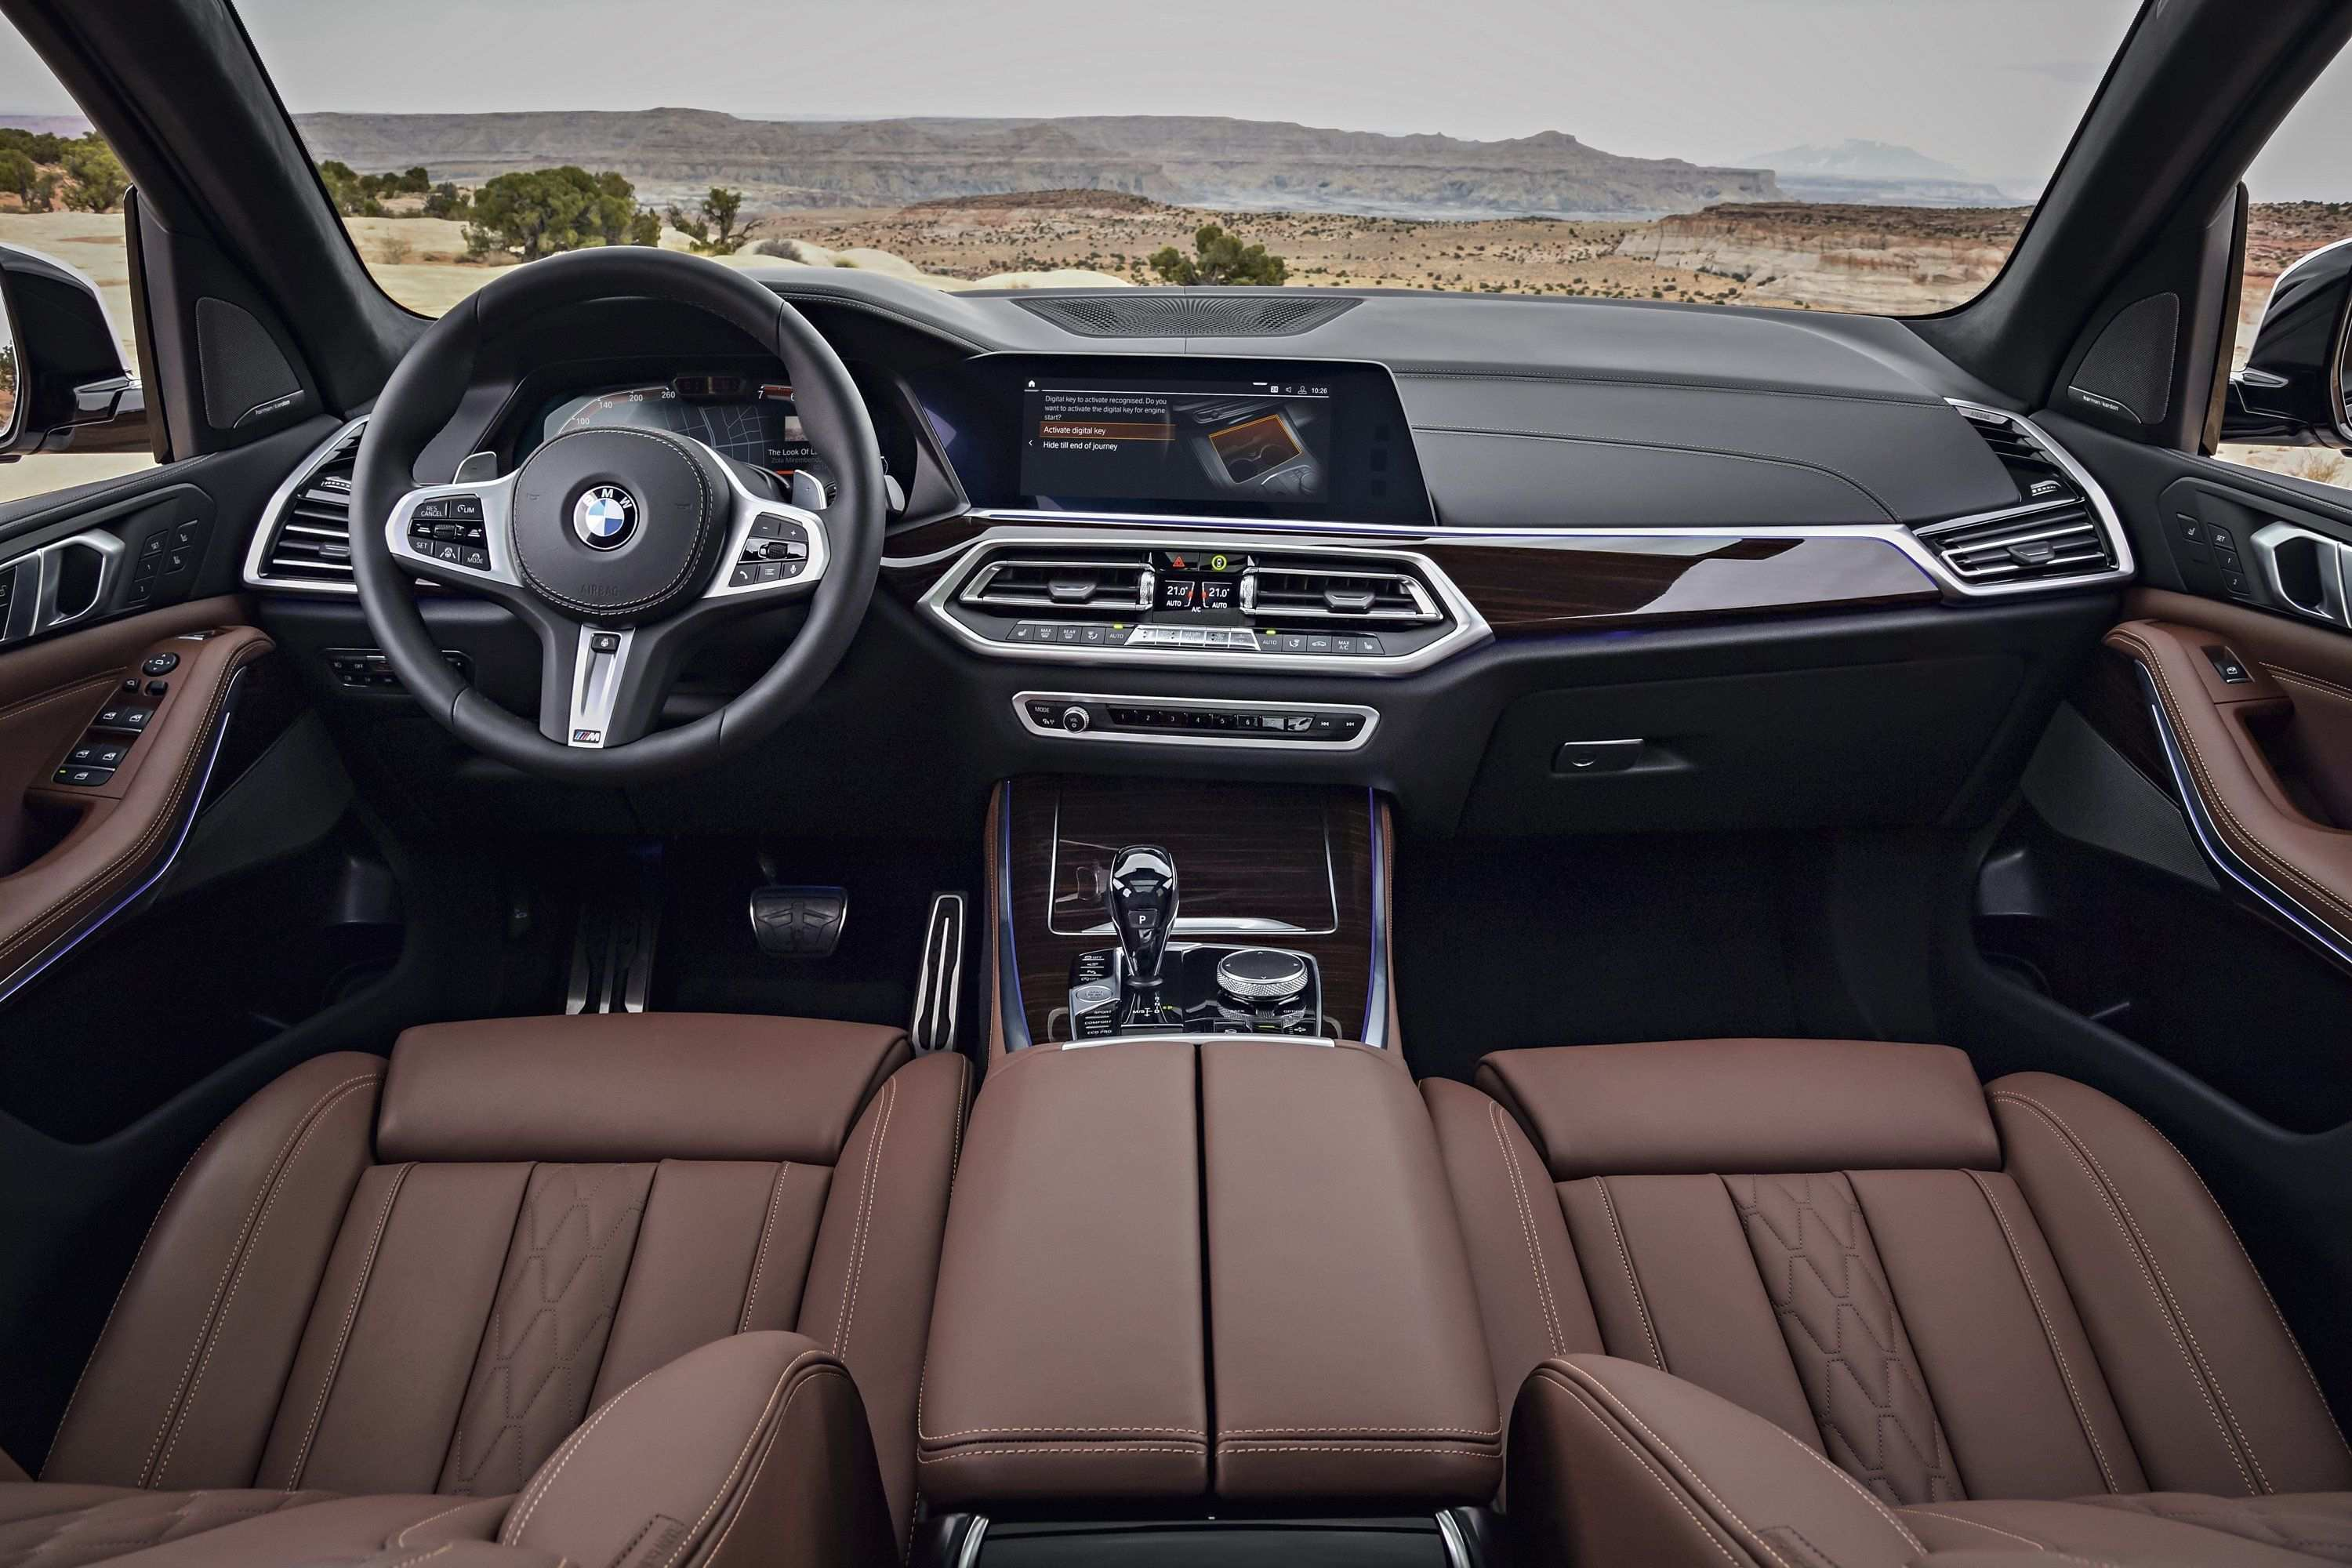 16 Concept of 2019 Bmw Terrain Interior Engine by 2019 Bmw Terrain Interior